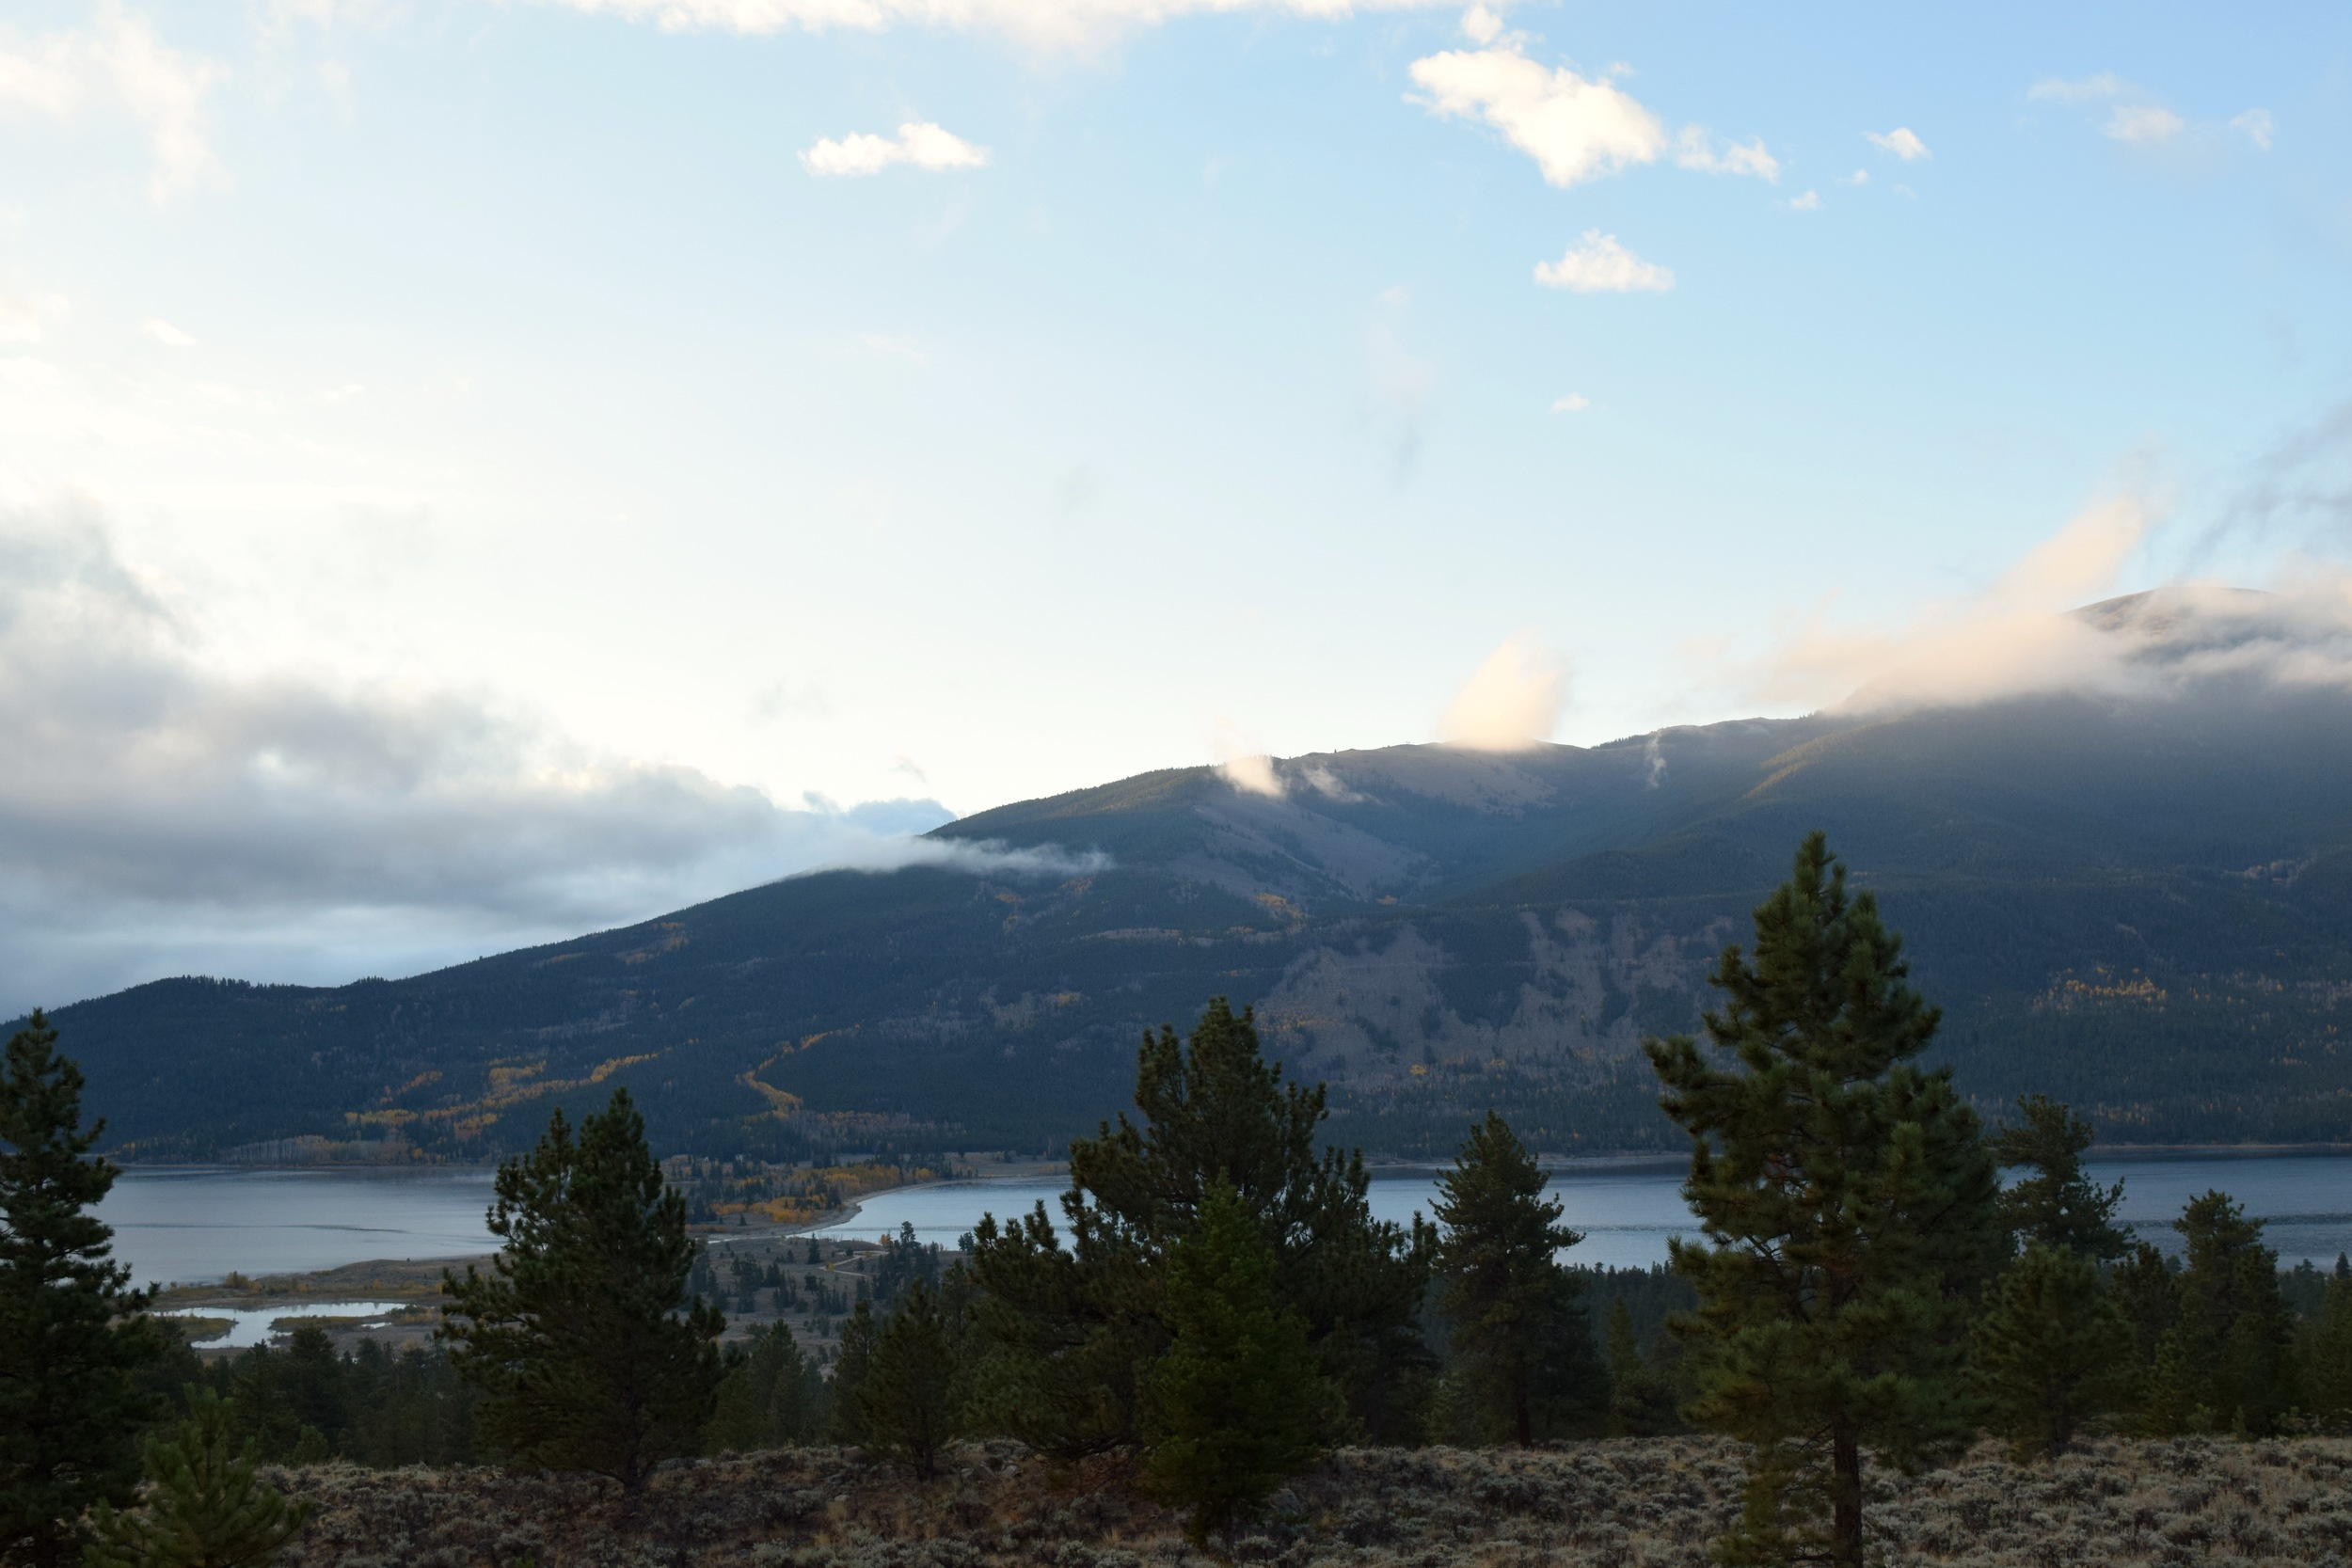 Sunrise off the Sawatch mountains, quite possibly my new favorite mountain range in Colorado.